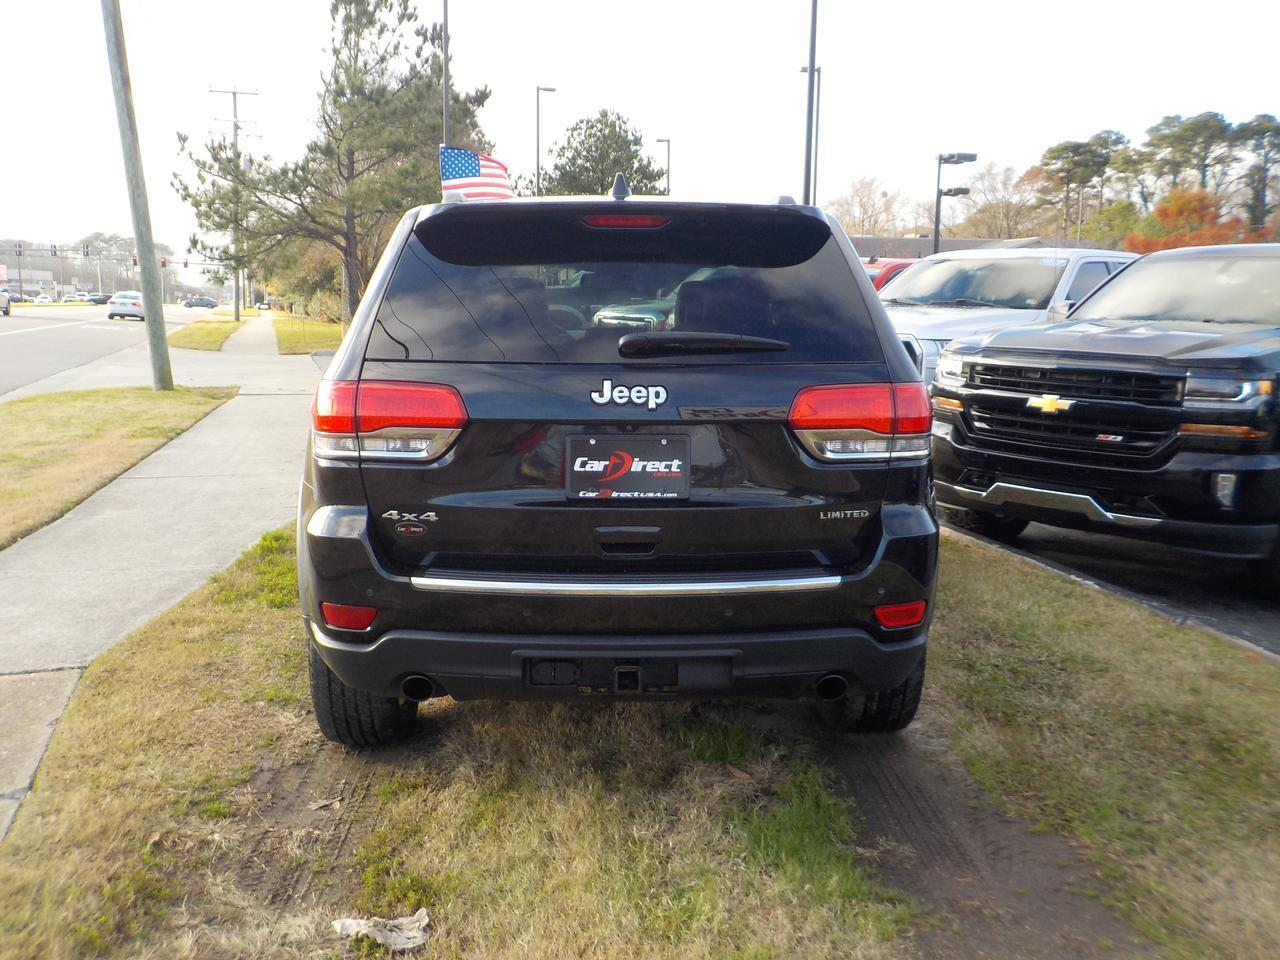 2014 JEEP GRAND CHEROKEE LIMITED 4X4, ONE OWNER, LEATHER, NAVIGATION, TOW PKG, REMOTE START, HEATED SEATS, ONLY 74K MILES! Virginia Beach VA